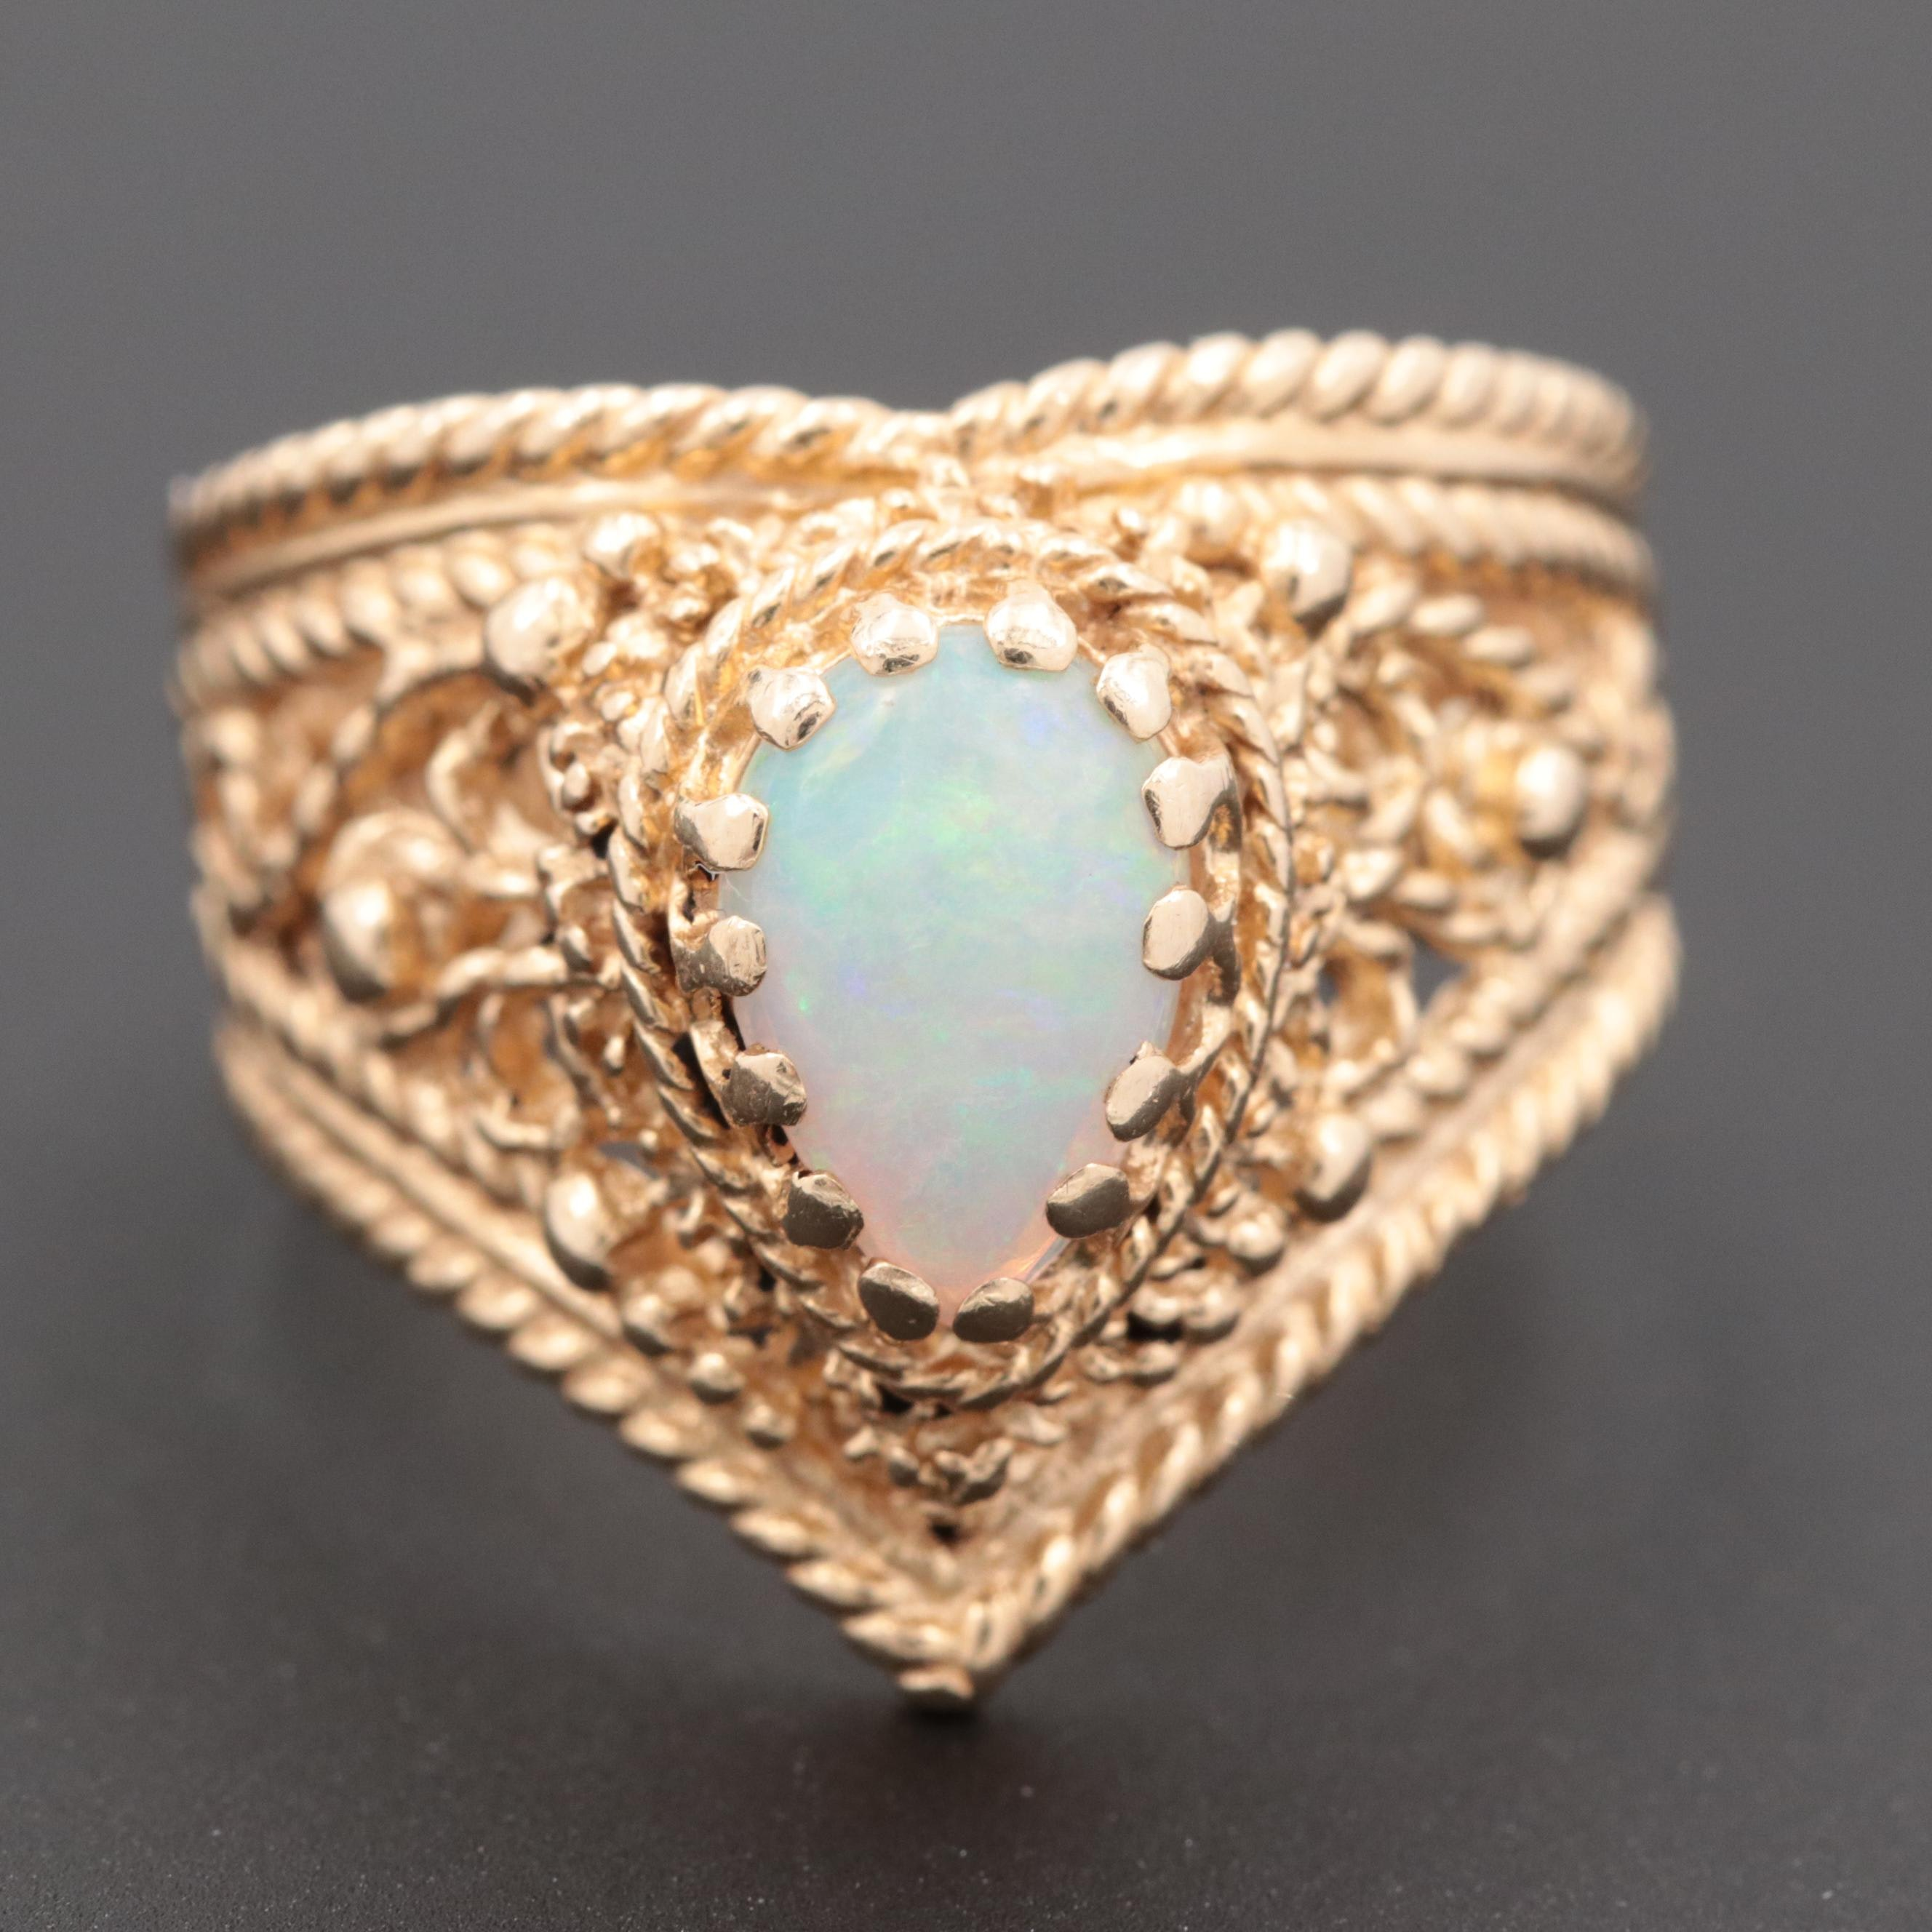 14K Yellow Gold Opal Openwork Ring with Rope Motif Edges